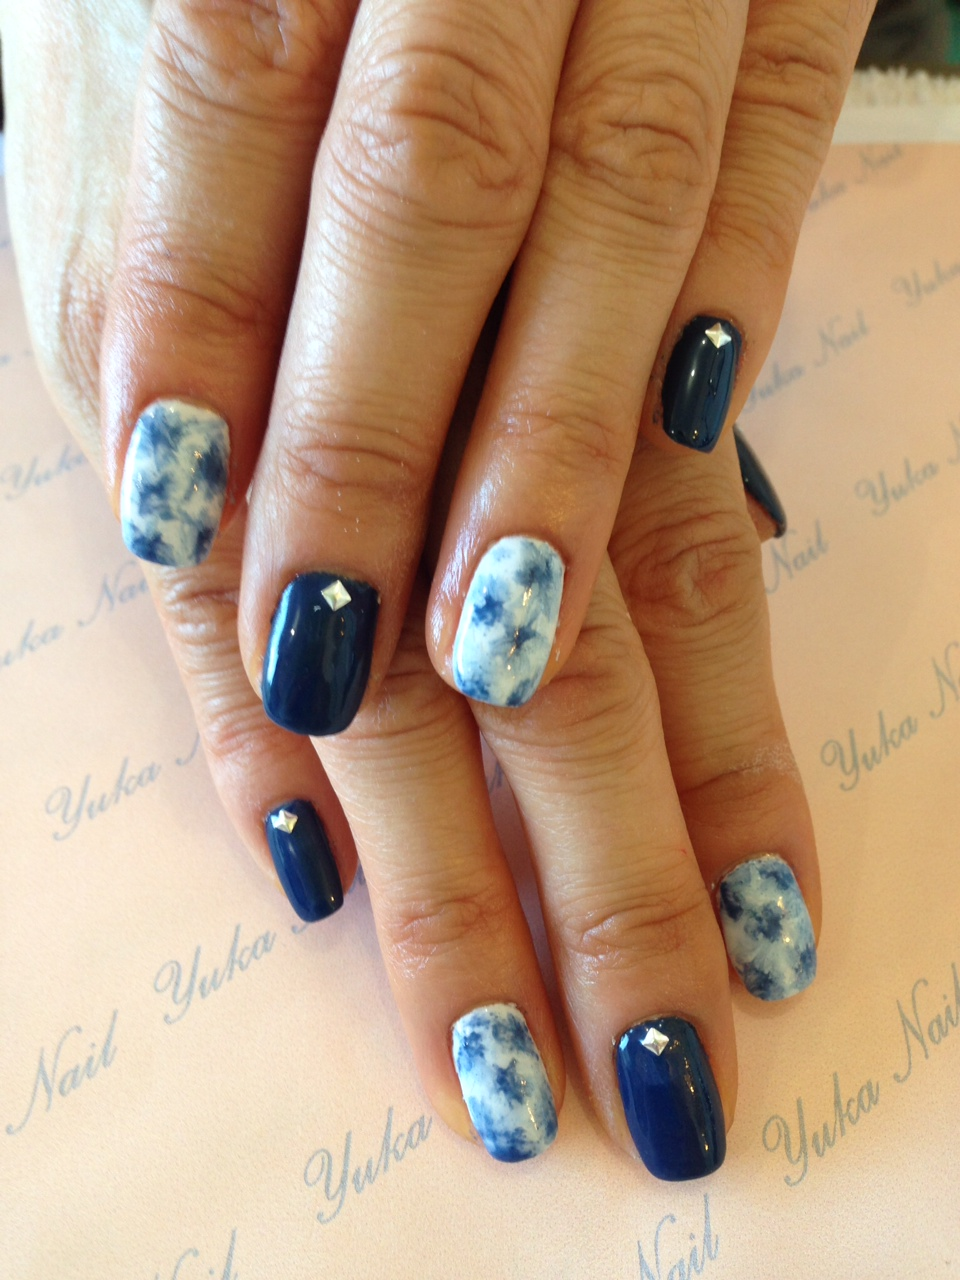 Sodalite gel mani is for protection!